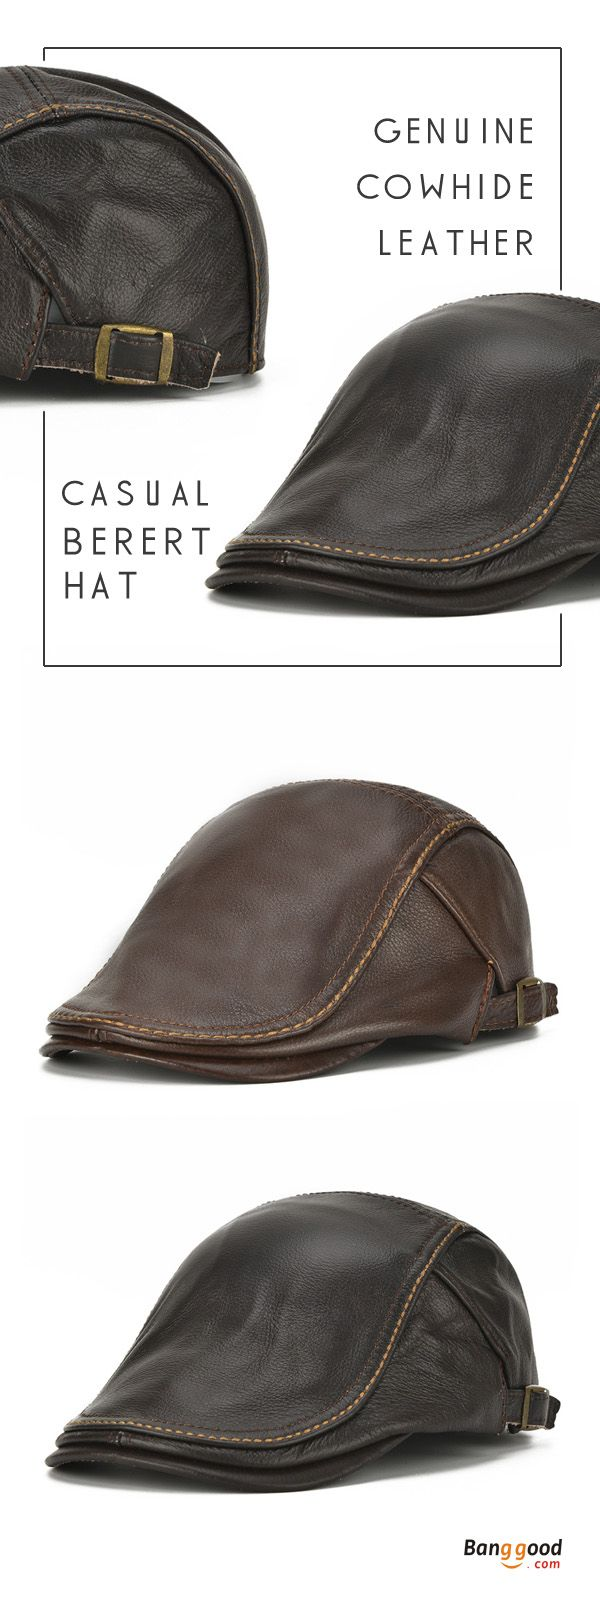 US$36.66+Free shipping. Beret Hat, Forward Caps, Genuine Cowhide Leather, Solid, Casual, Warm. Color: Coffee, Brown. Shop now~